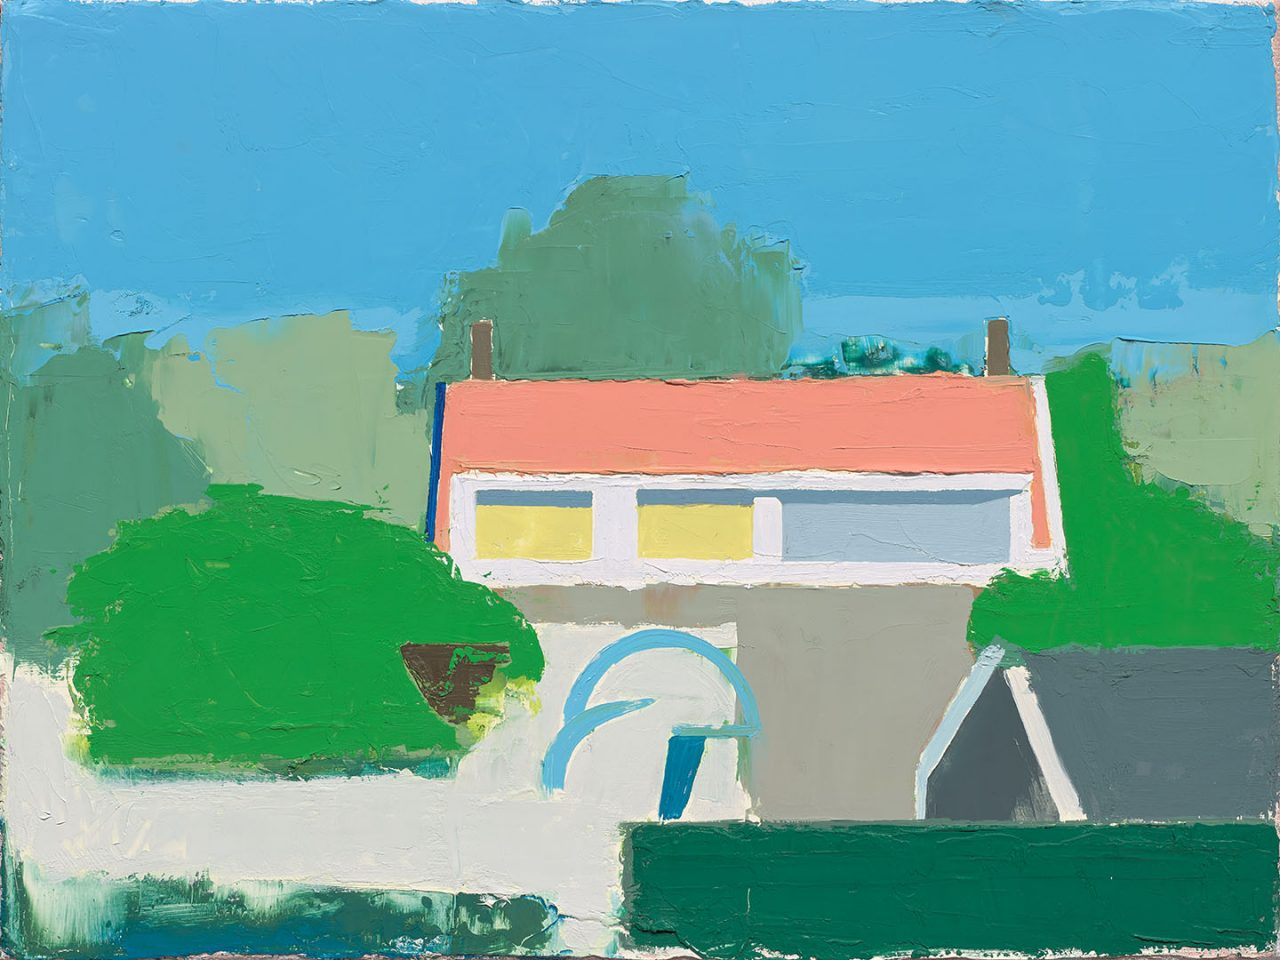 Dutch Dike House II, 2015/2017 Oil on linen, size: 30x40 cm